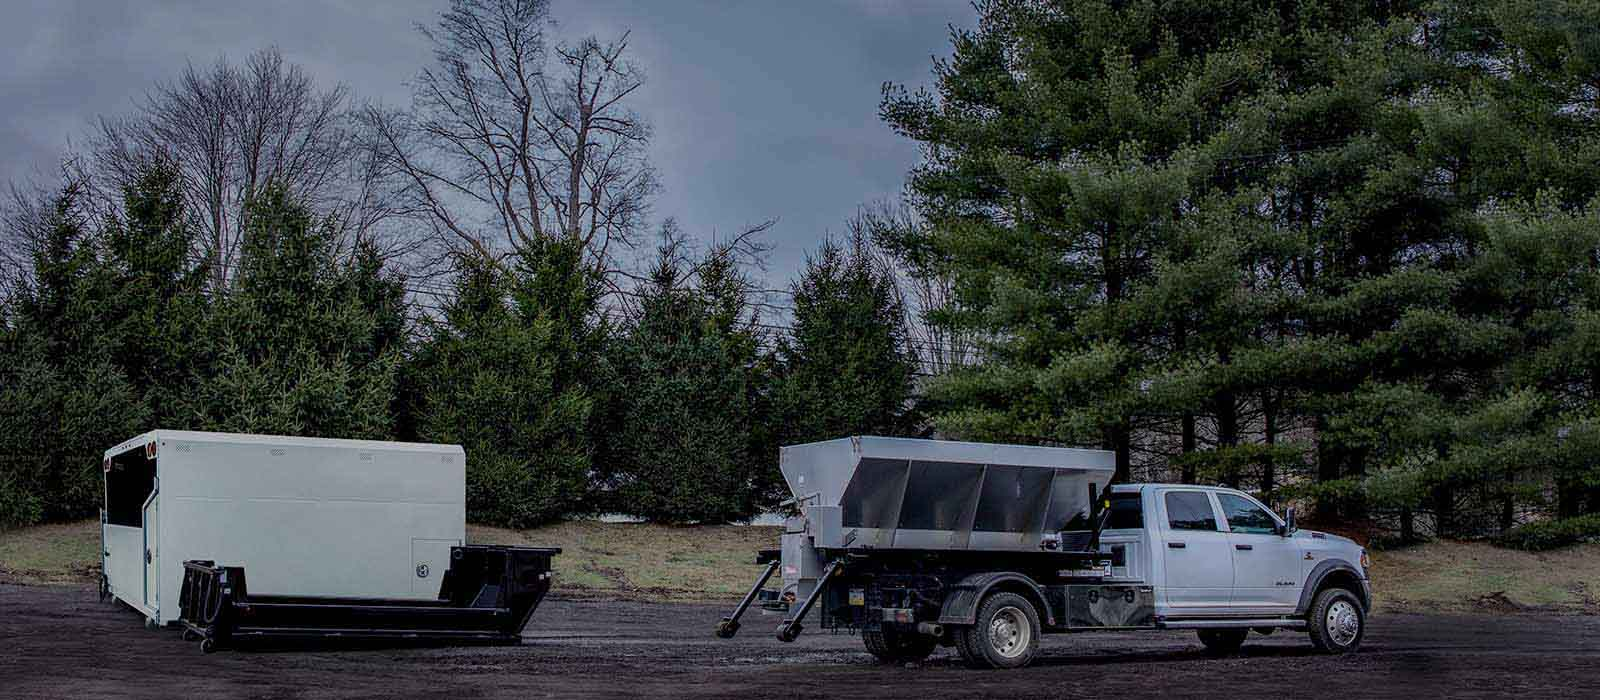 Eliminate idle, job-specific trucks by pairing a single truck with a fleet of interchangeable bodies that will provide you with the right tool for every job, every time.